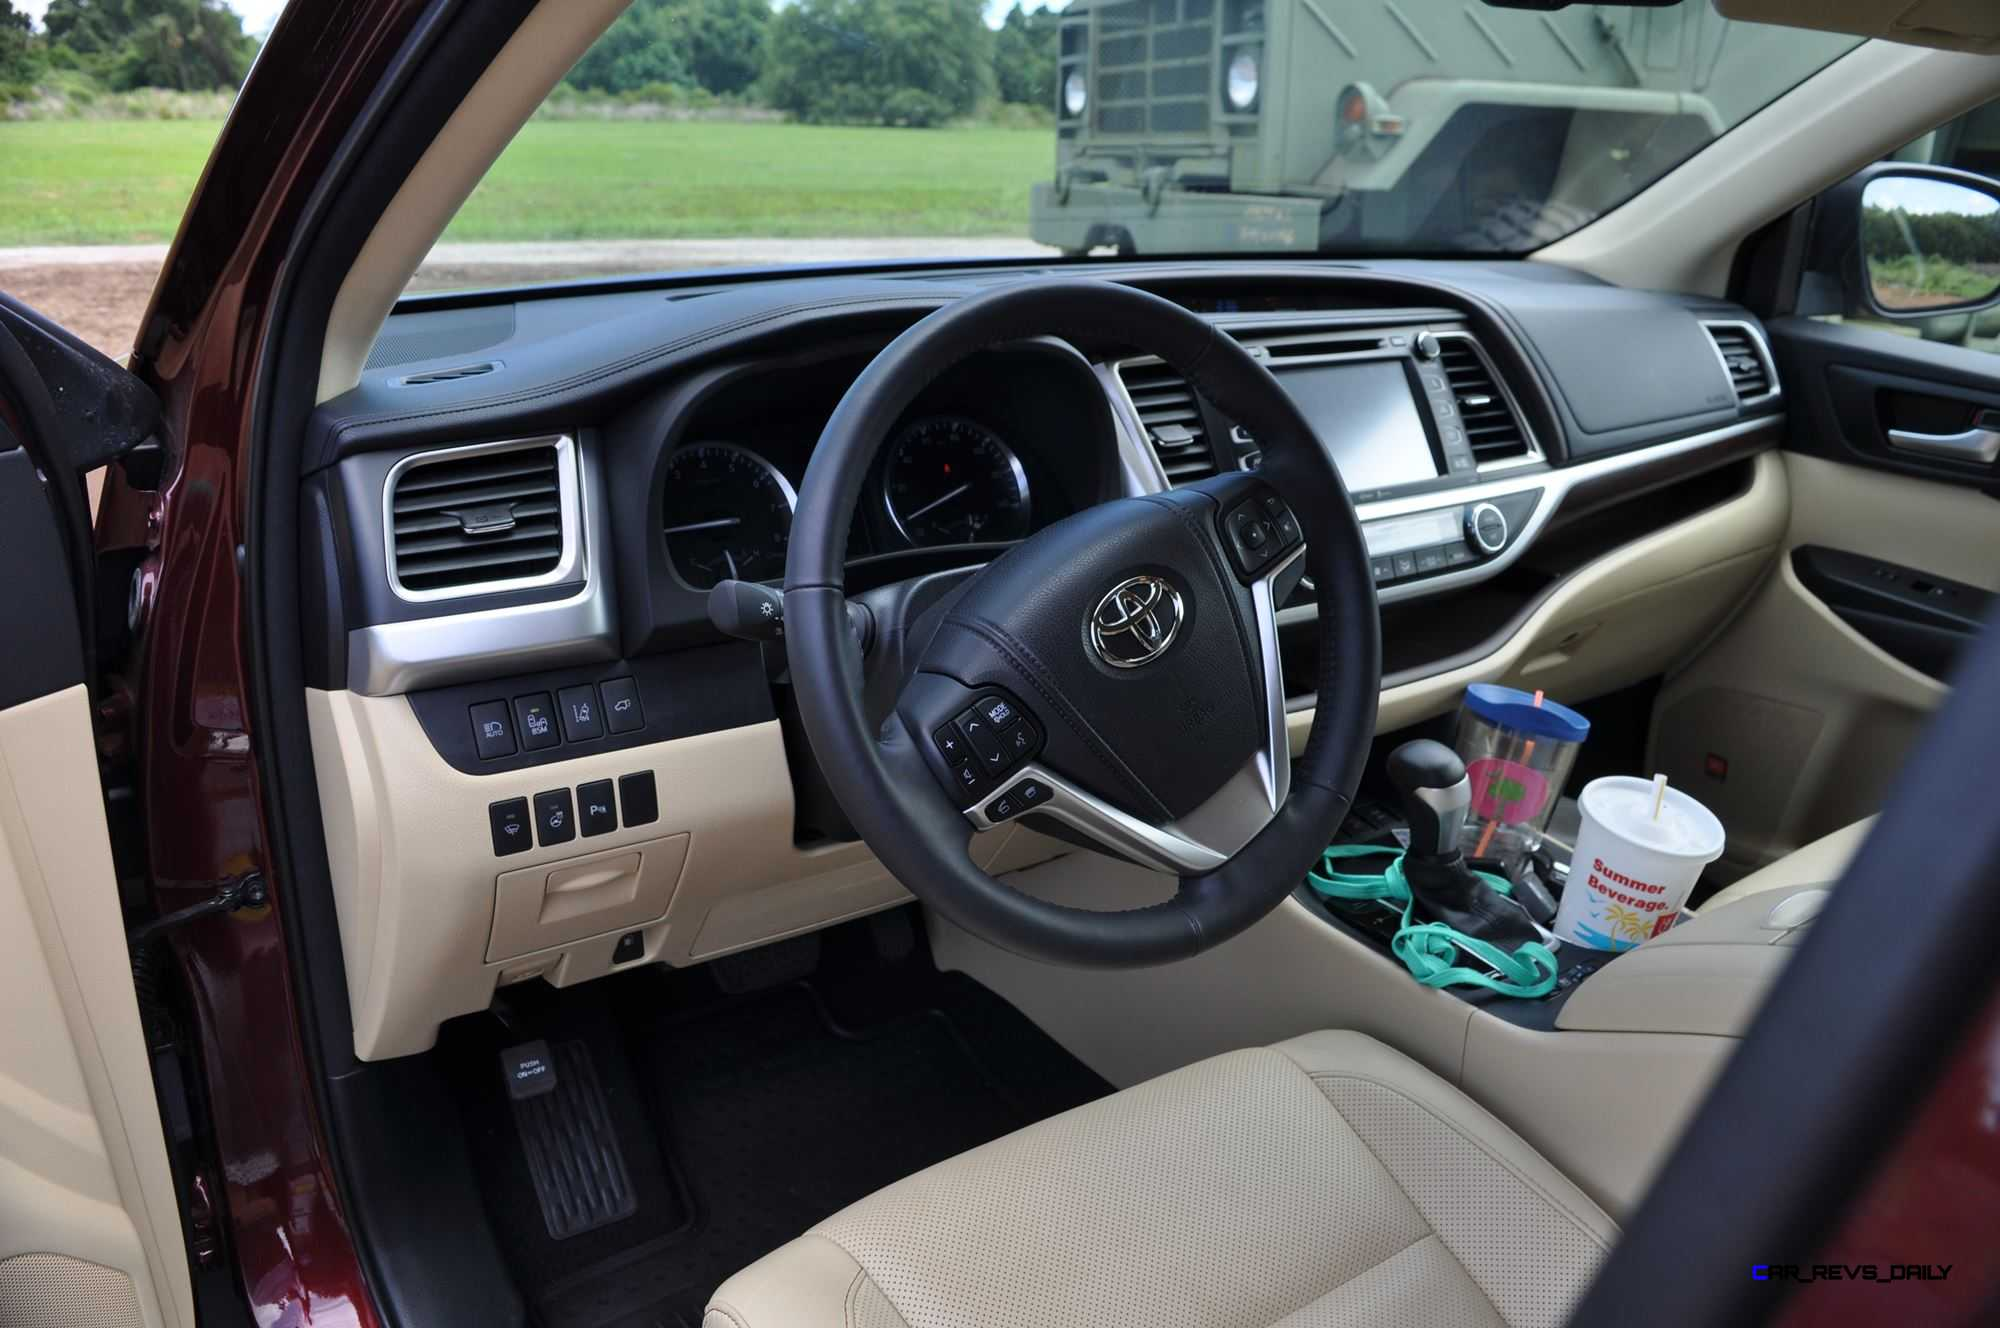 front highlander interior seats com assorted photos photo toyota automotive